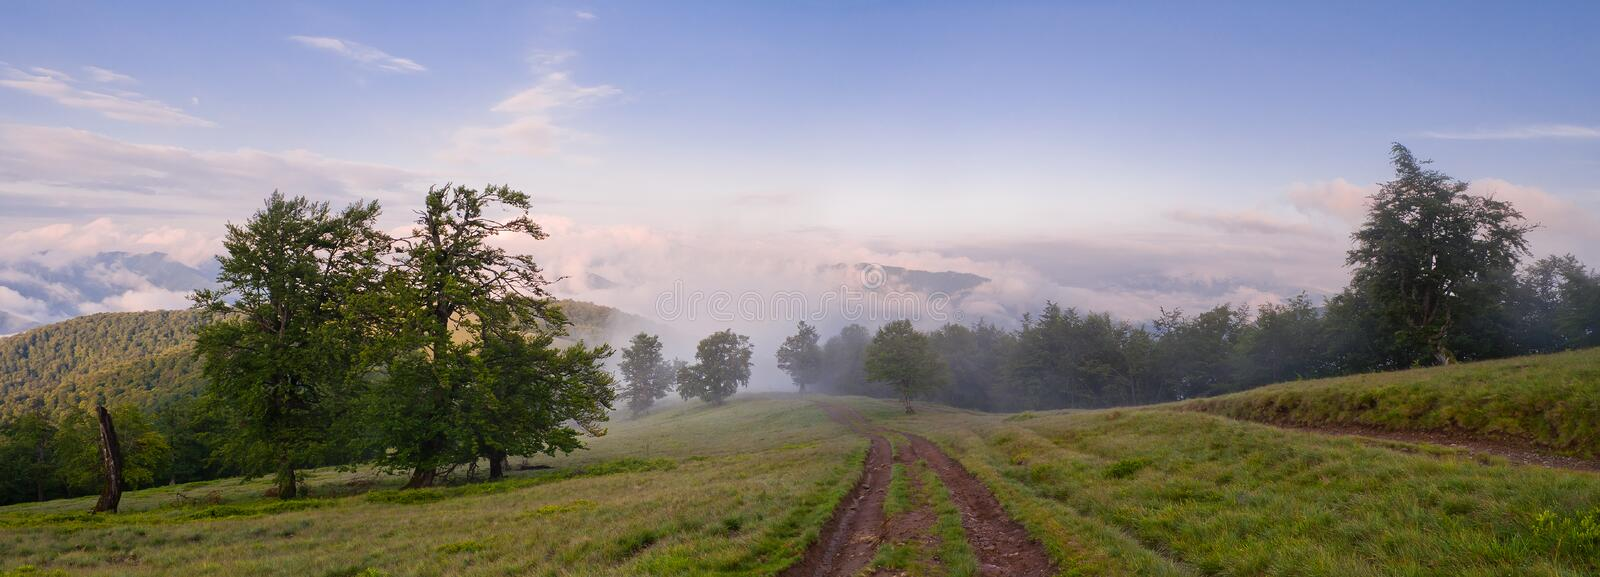 Landscape with fog in mountains and rows of trees in morning. Summer mountain landscape. Landscape with fog in mountains and rows of trees in morning royalty free stock photo